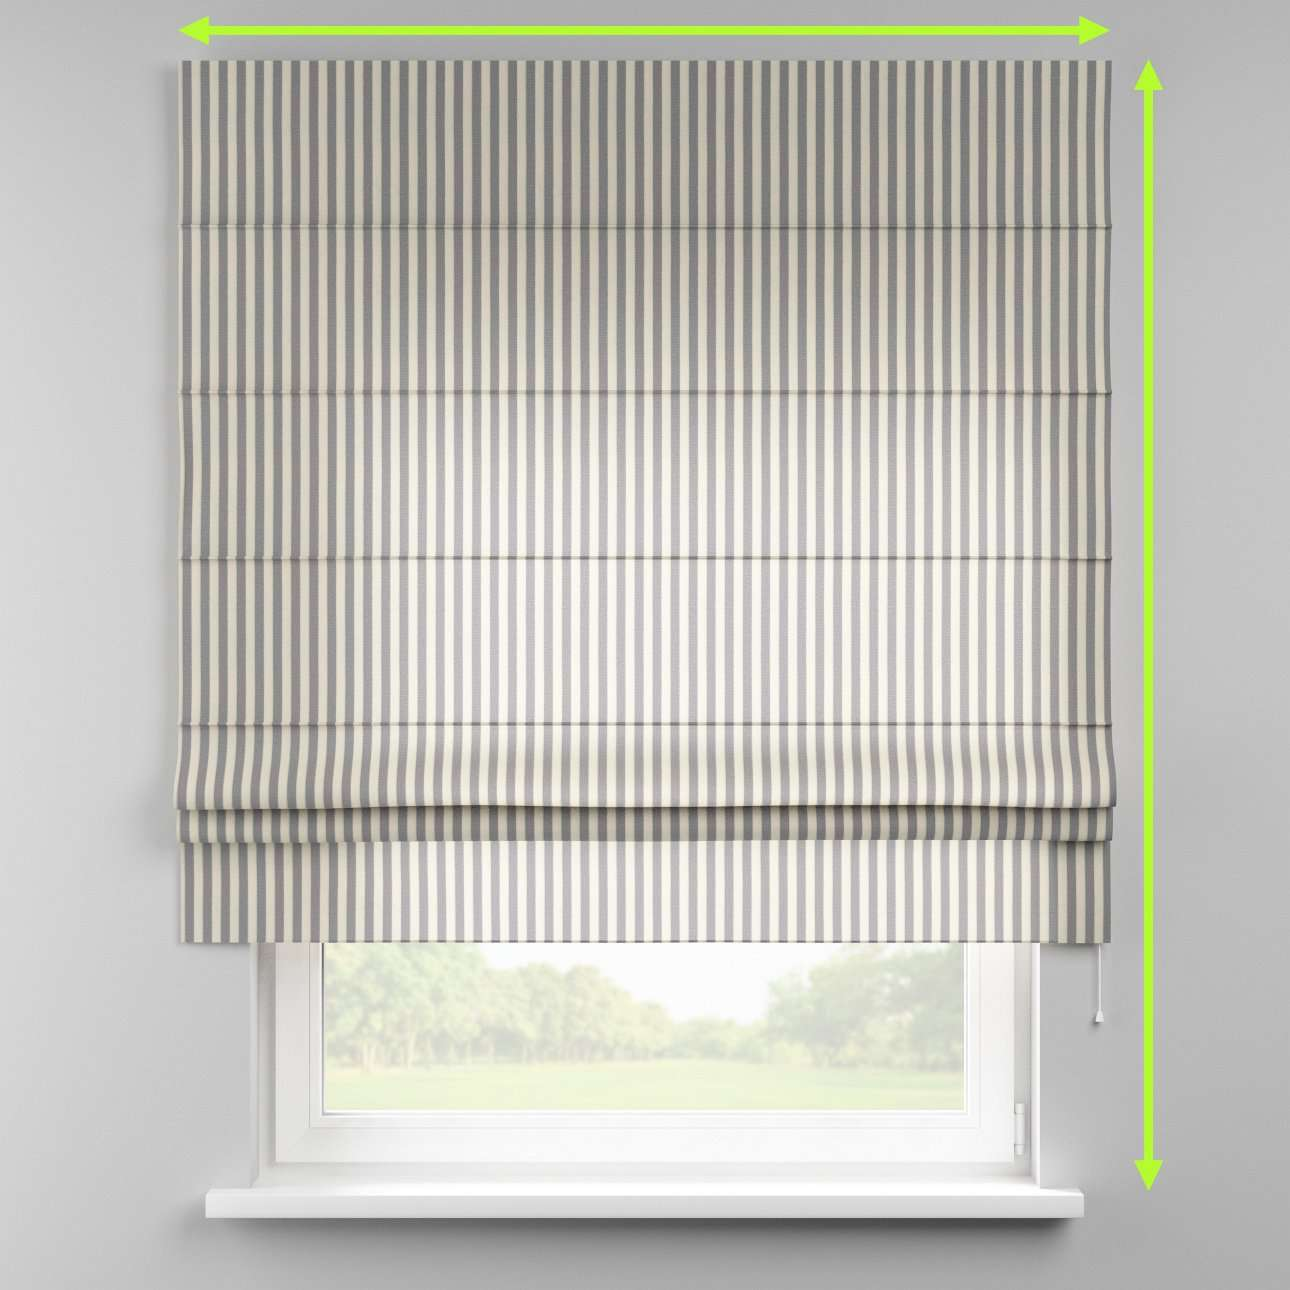 Padva roman blind  in collection Quadro, fabric: 136-02